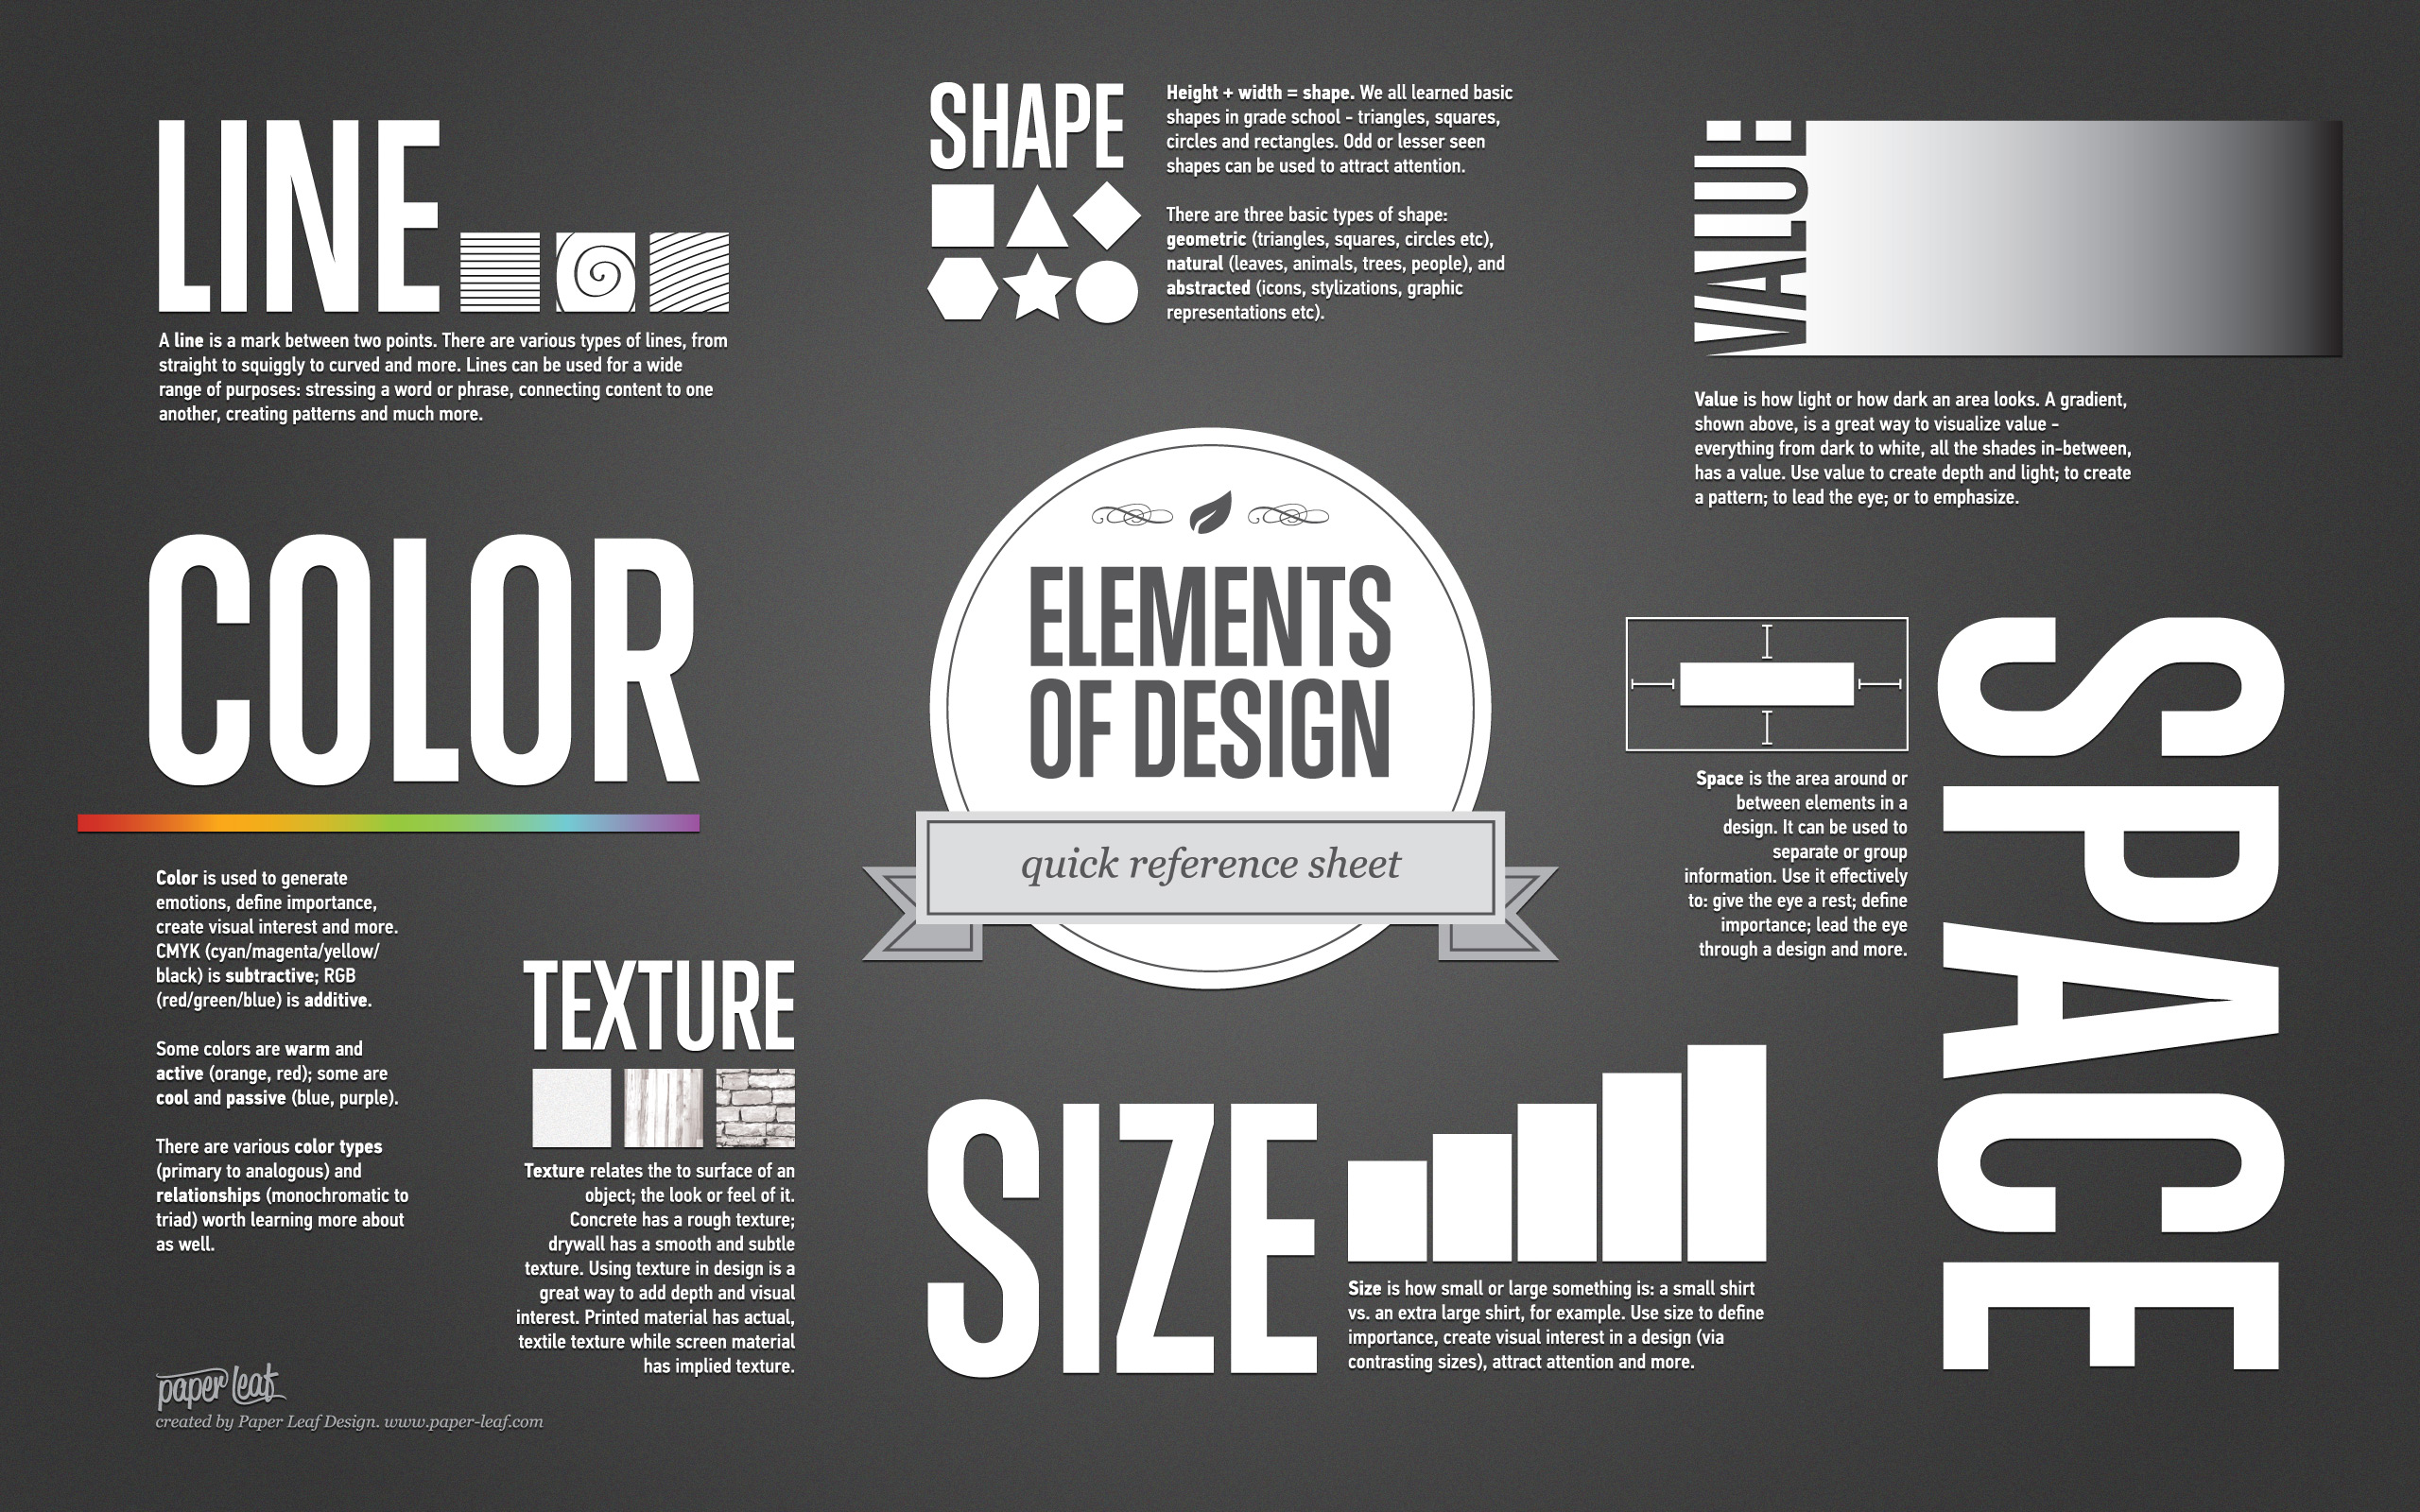 Basic Elements Of Design : What makes good design basic elements and principles